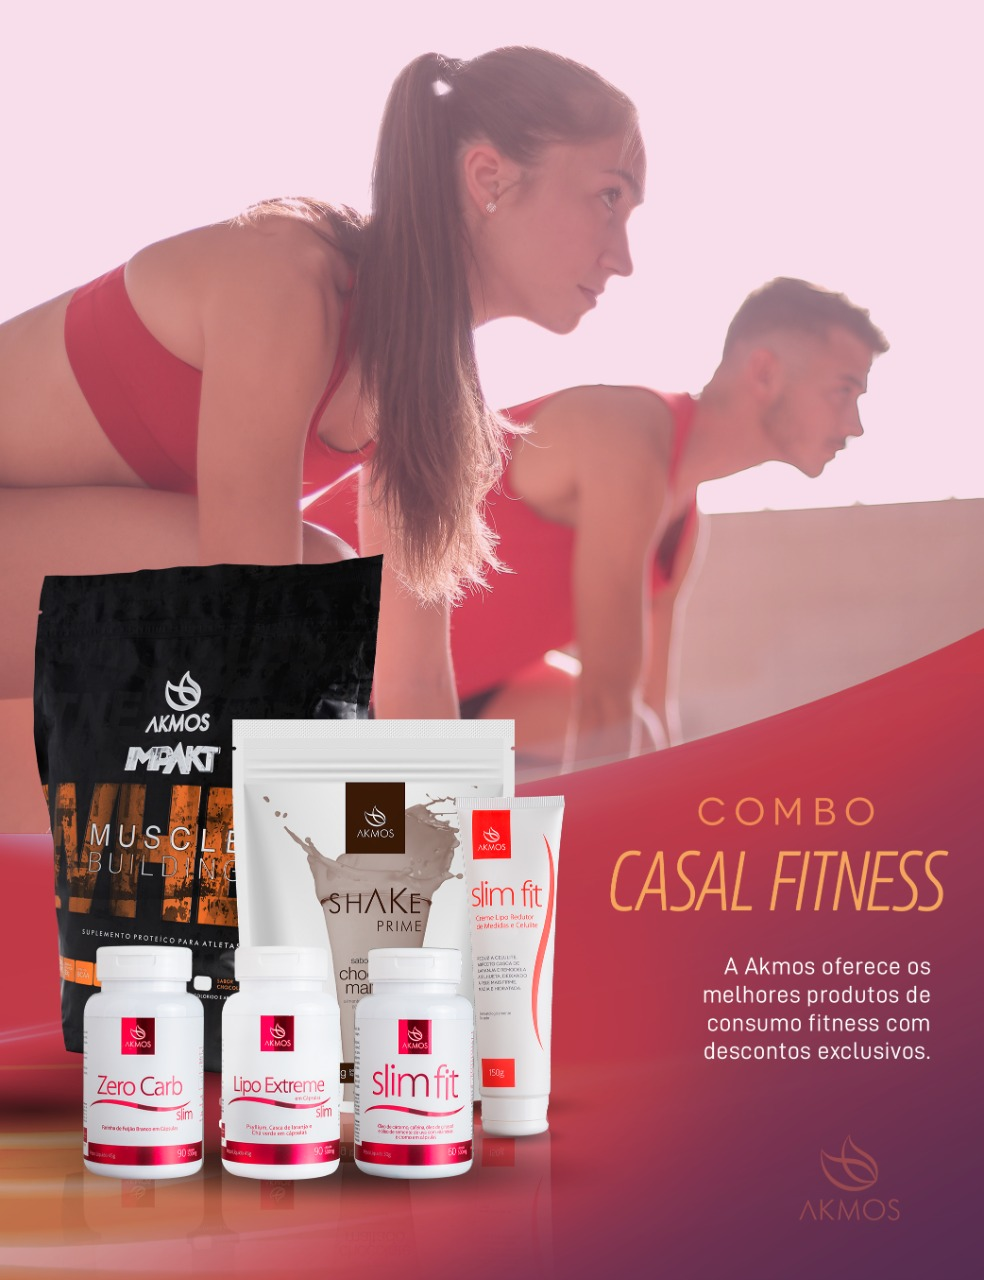 COMBO CONSUMO INTELIGENTE CASAL FITNESS  - WHEY PROTEIN CHOCOLATE + SHAKE  PRIME DOCE DE LEITE Akmos